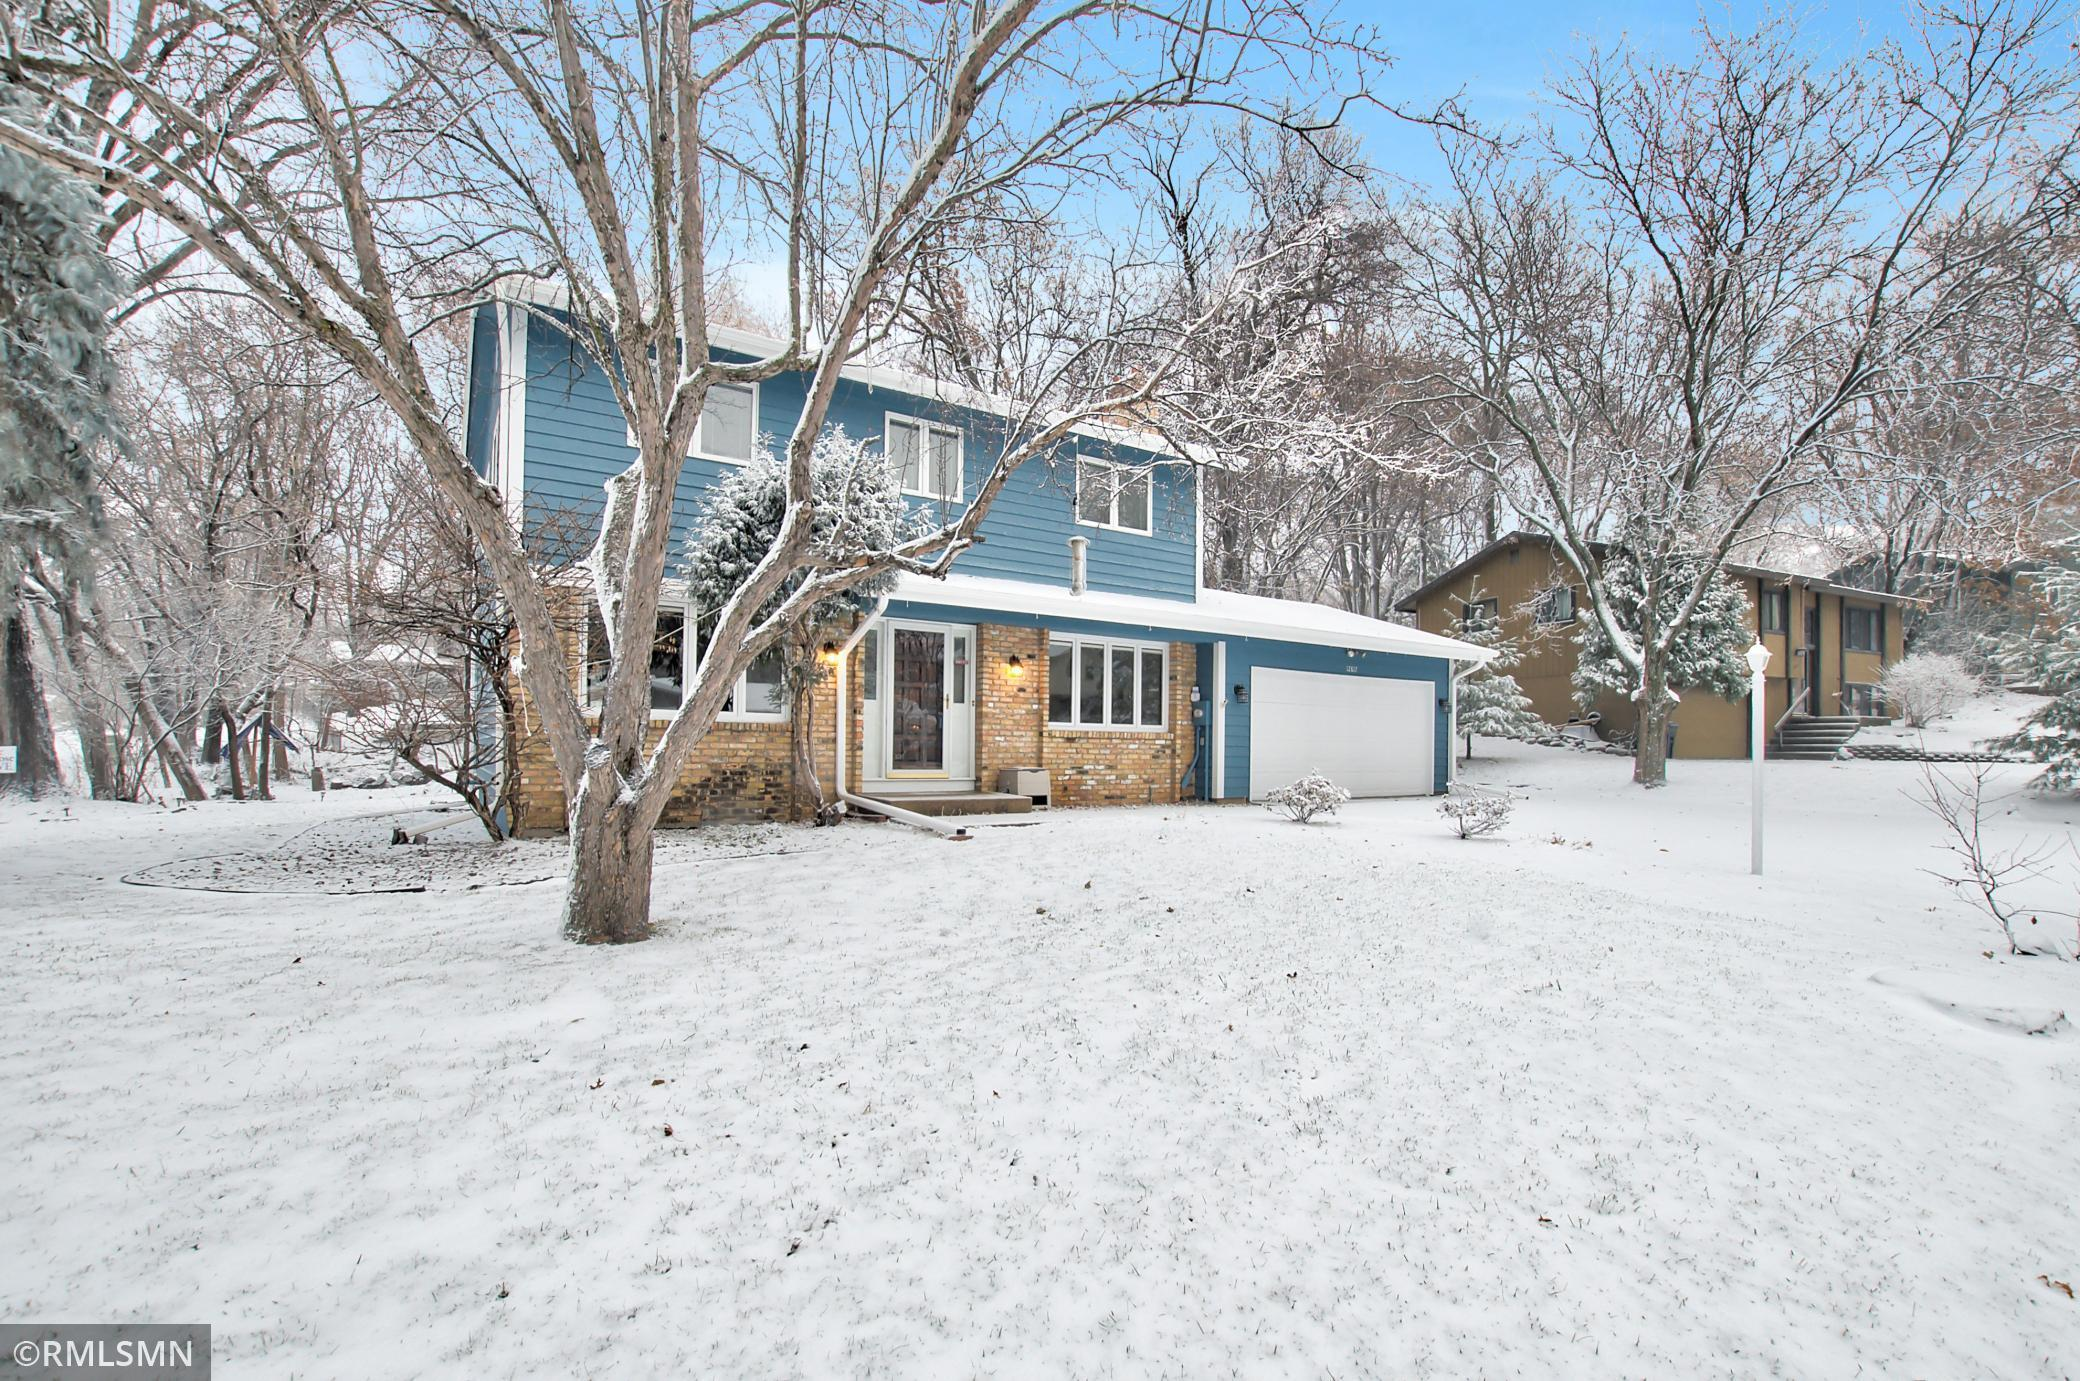 12817 Pheasant Run Property Photo - Burnsville, MN real estate listing